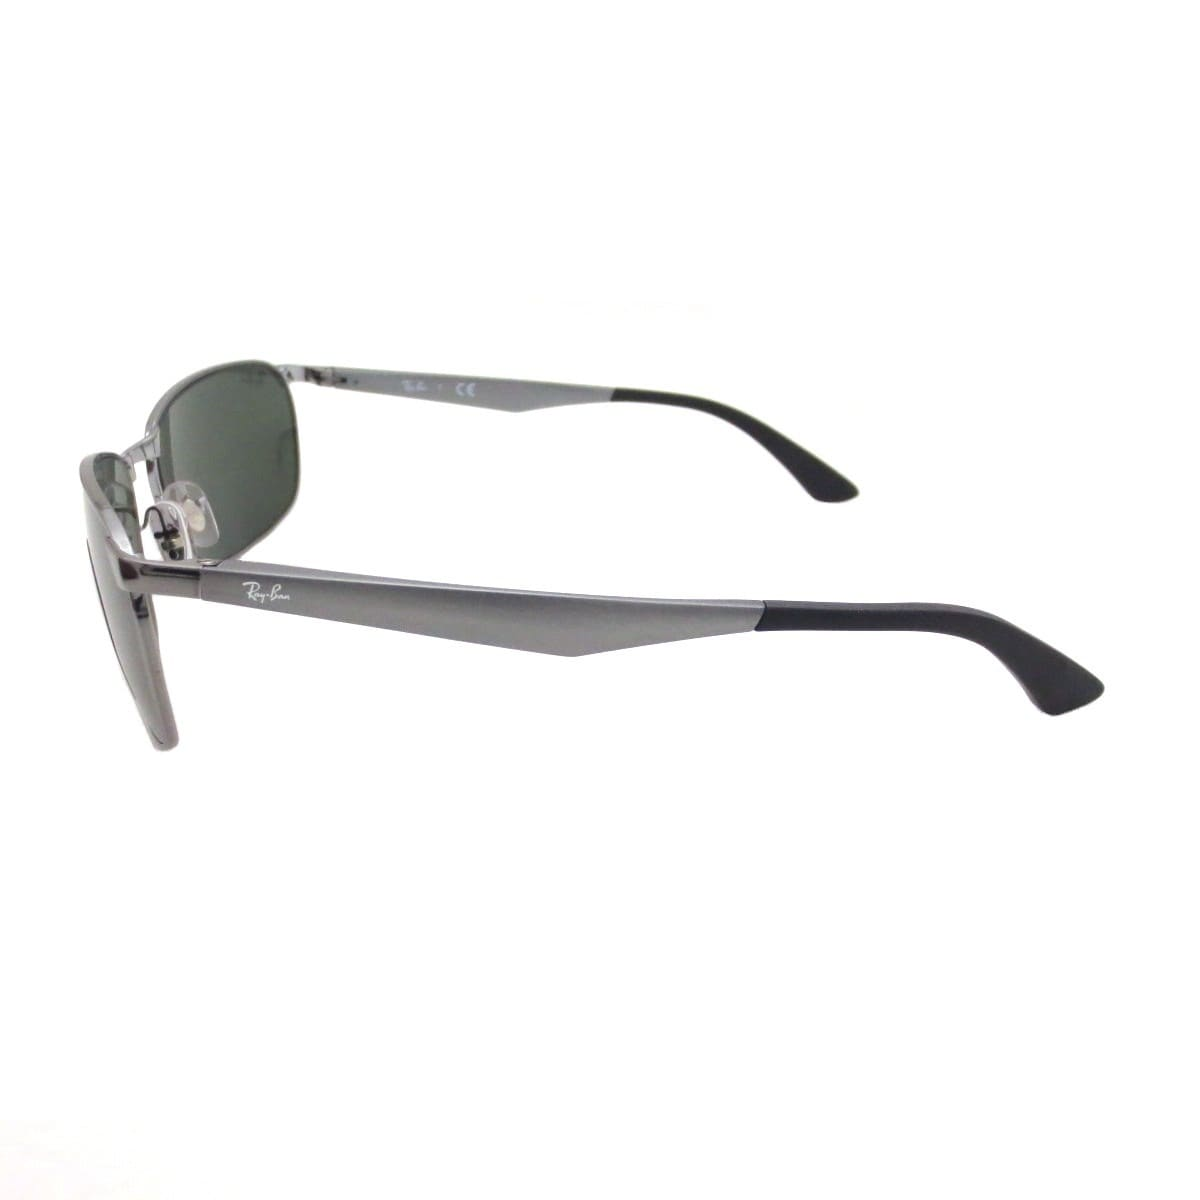 4e424c04d11 Shop Ray-Ban Men s RB3534 004 Gunmetal Frame Green Classic 62 mm Lens  Sunglasses - Free Shipping Today - Overstock - 16740943